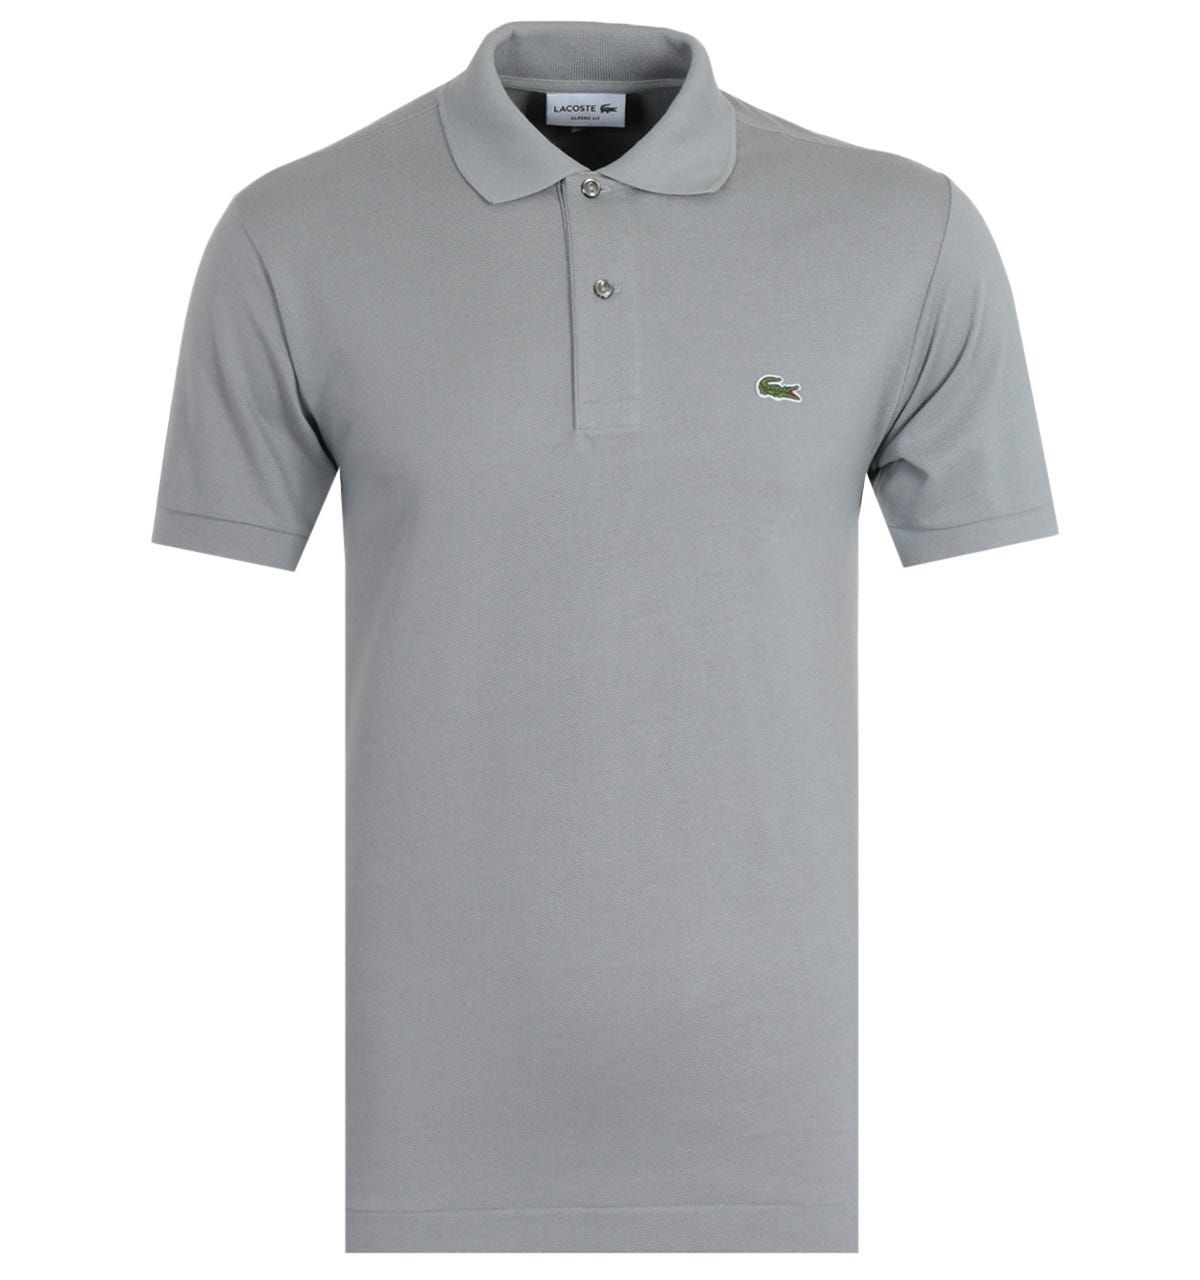 Lacoste Classic Fit Grey Polo Shirt